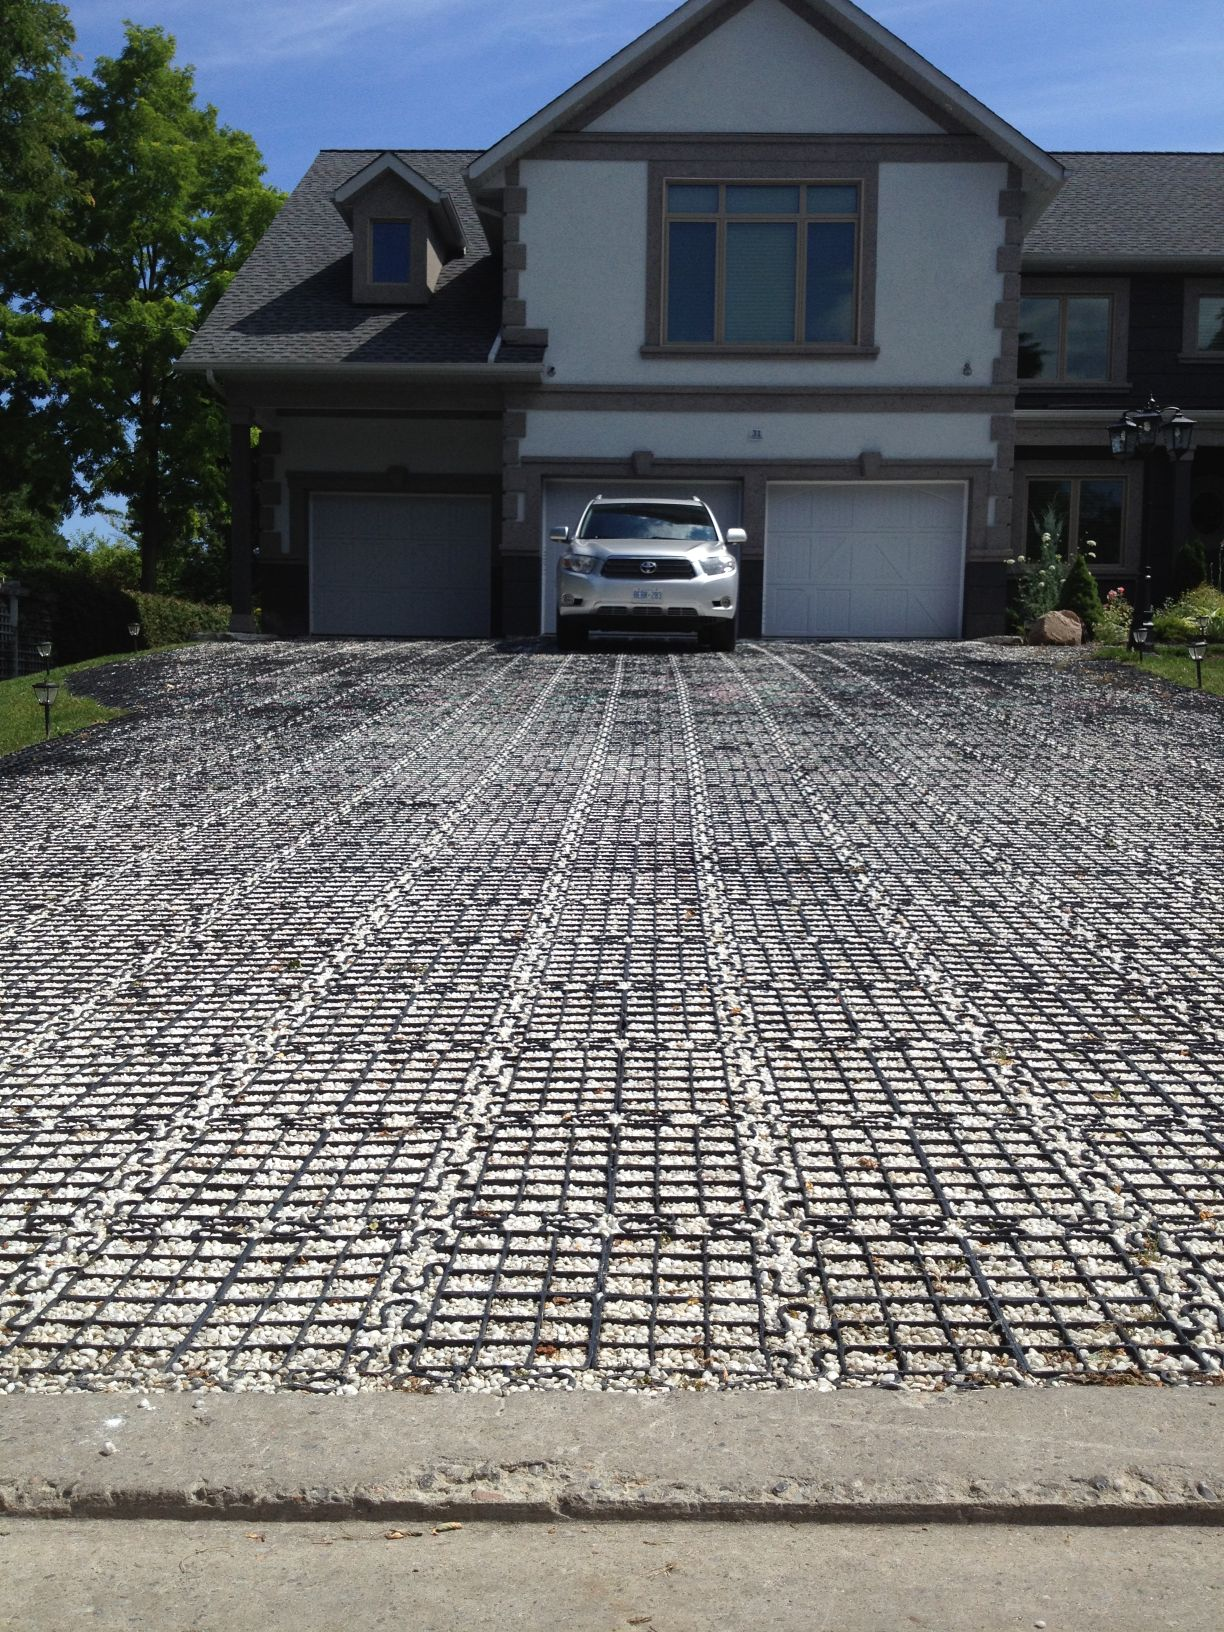 Permeable Driveway The ECO Built Home